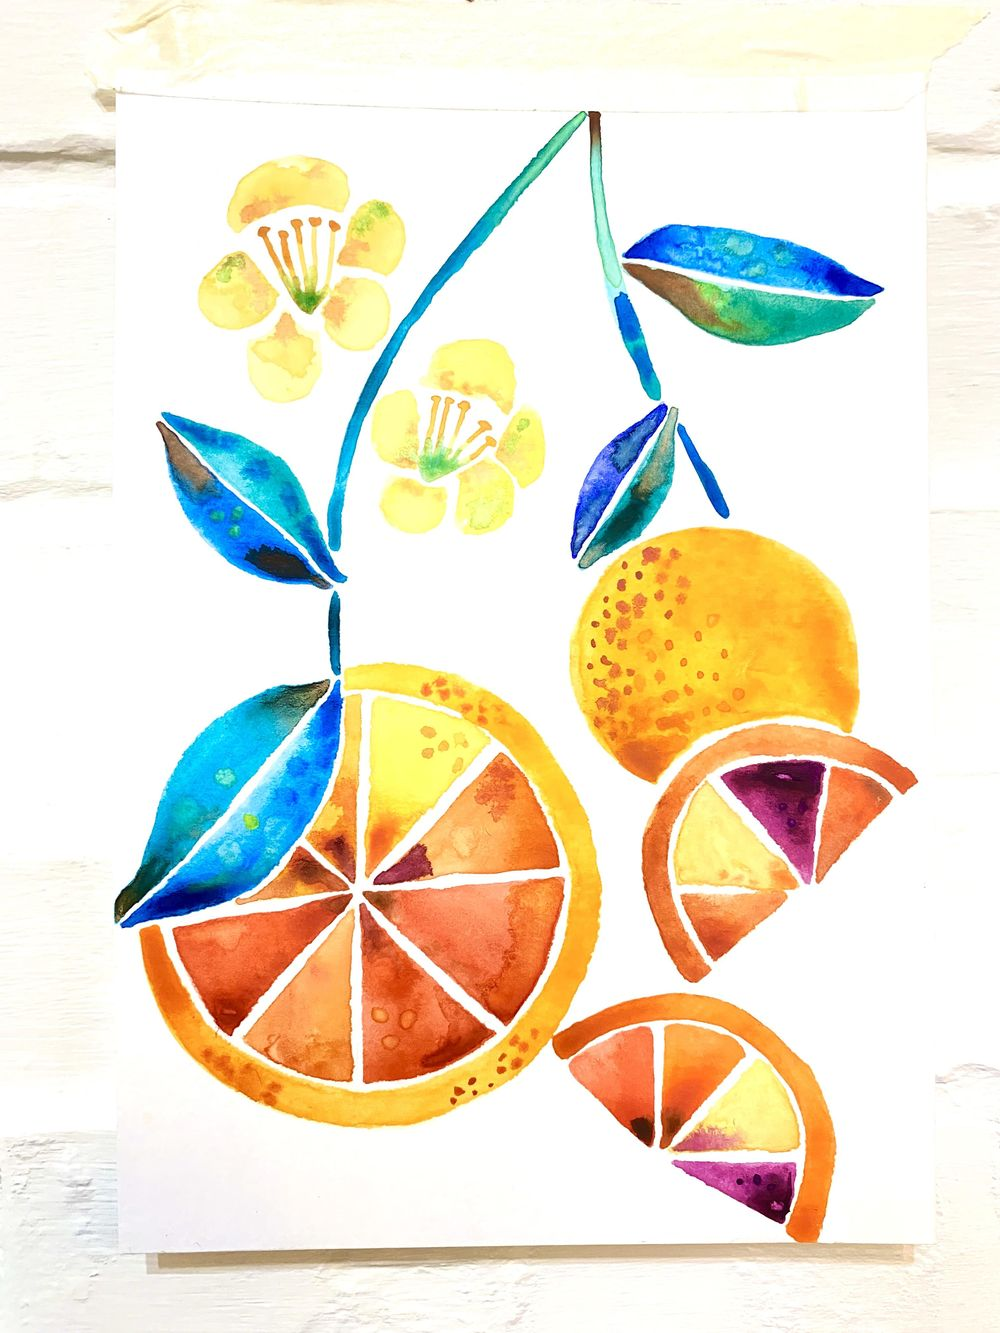 Vera loves watercolor - image 2 - student project